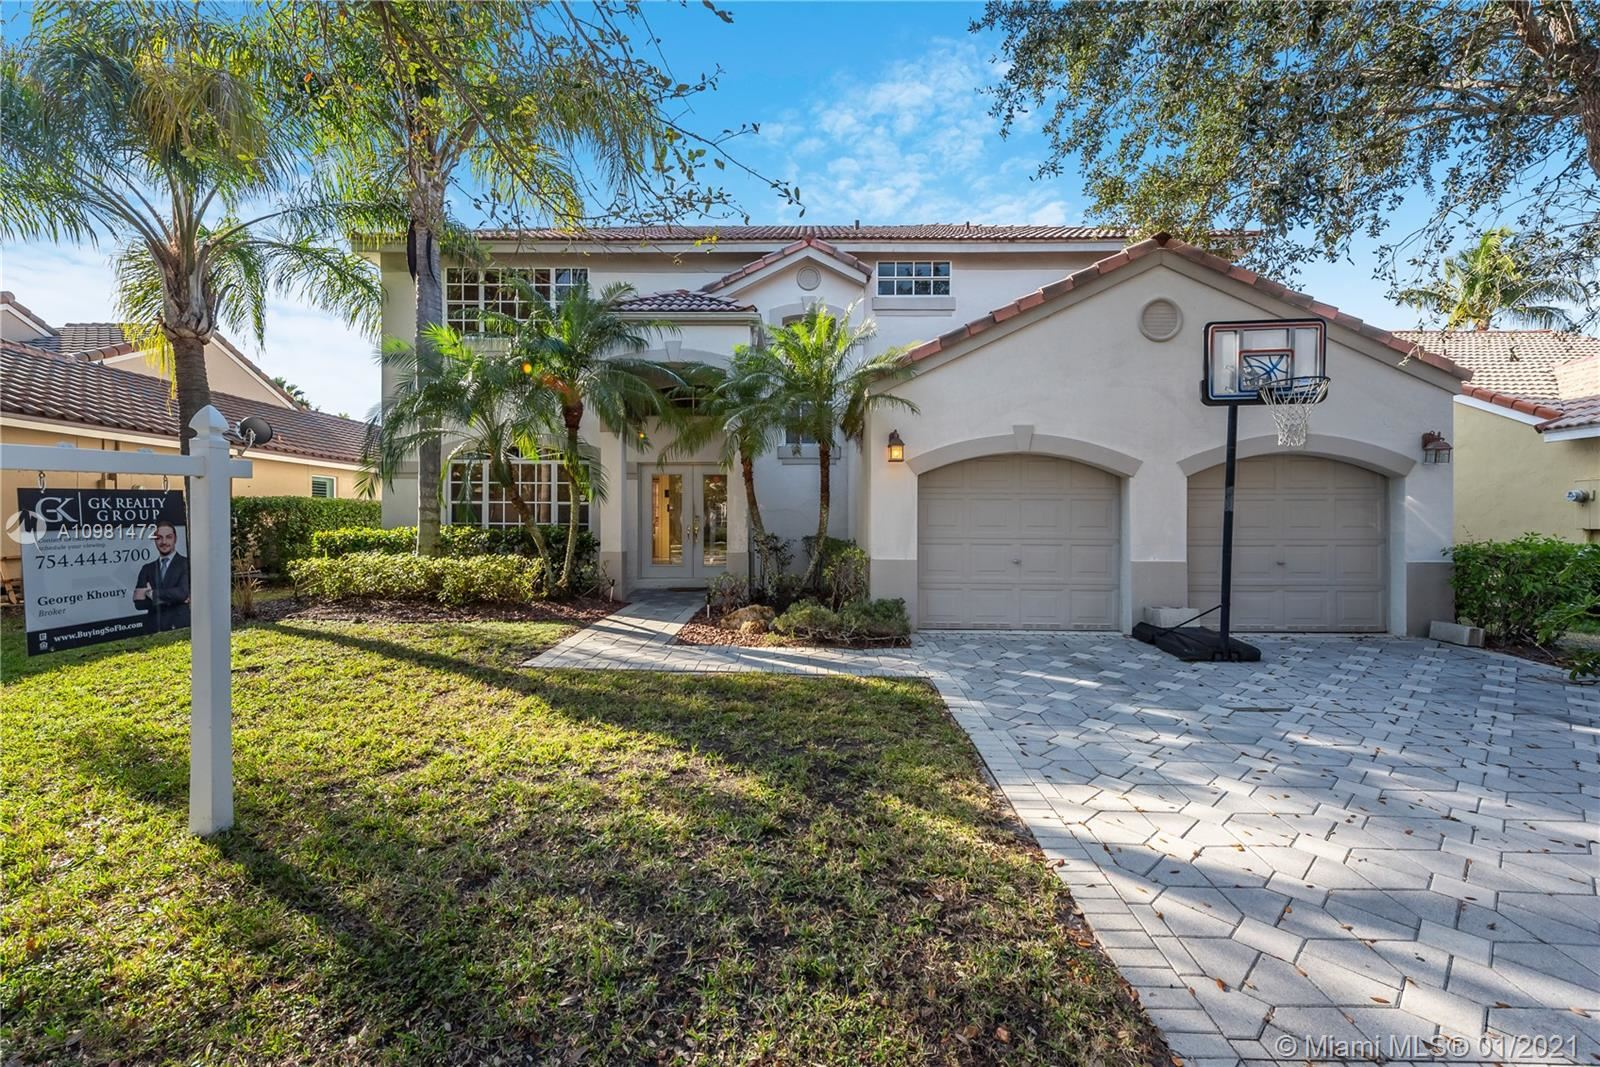 773 Verona Lake Dr, Weston, FL 33326 - #: A10981472